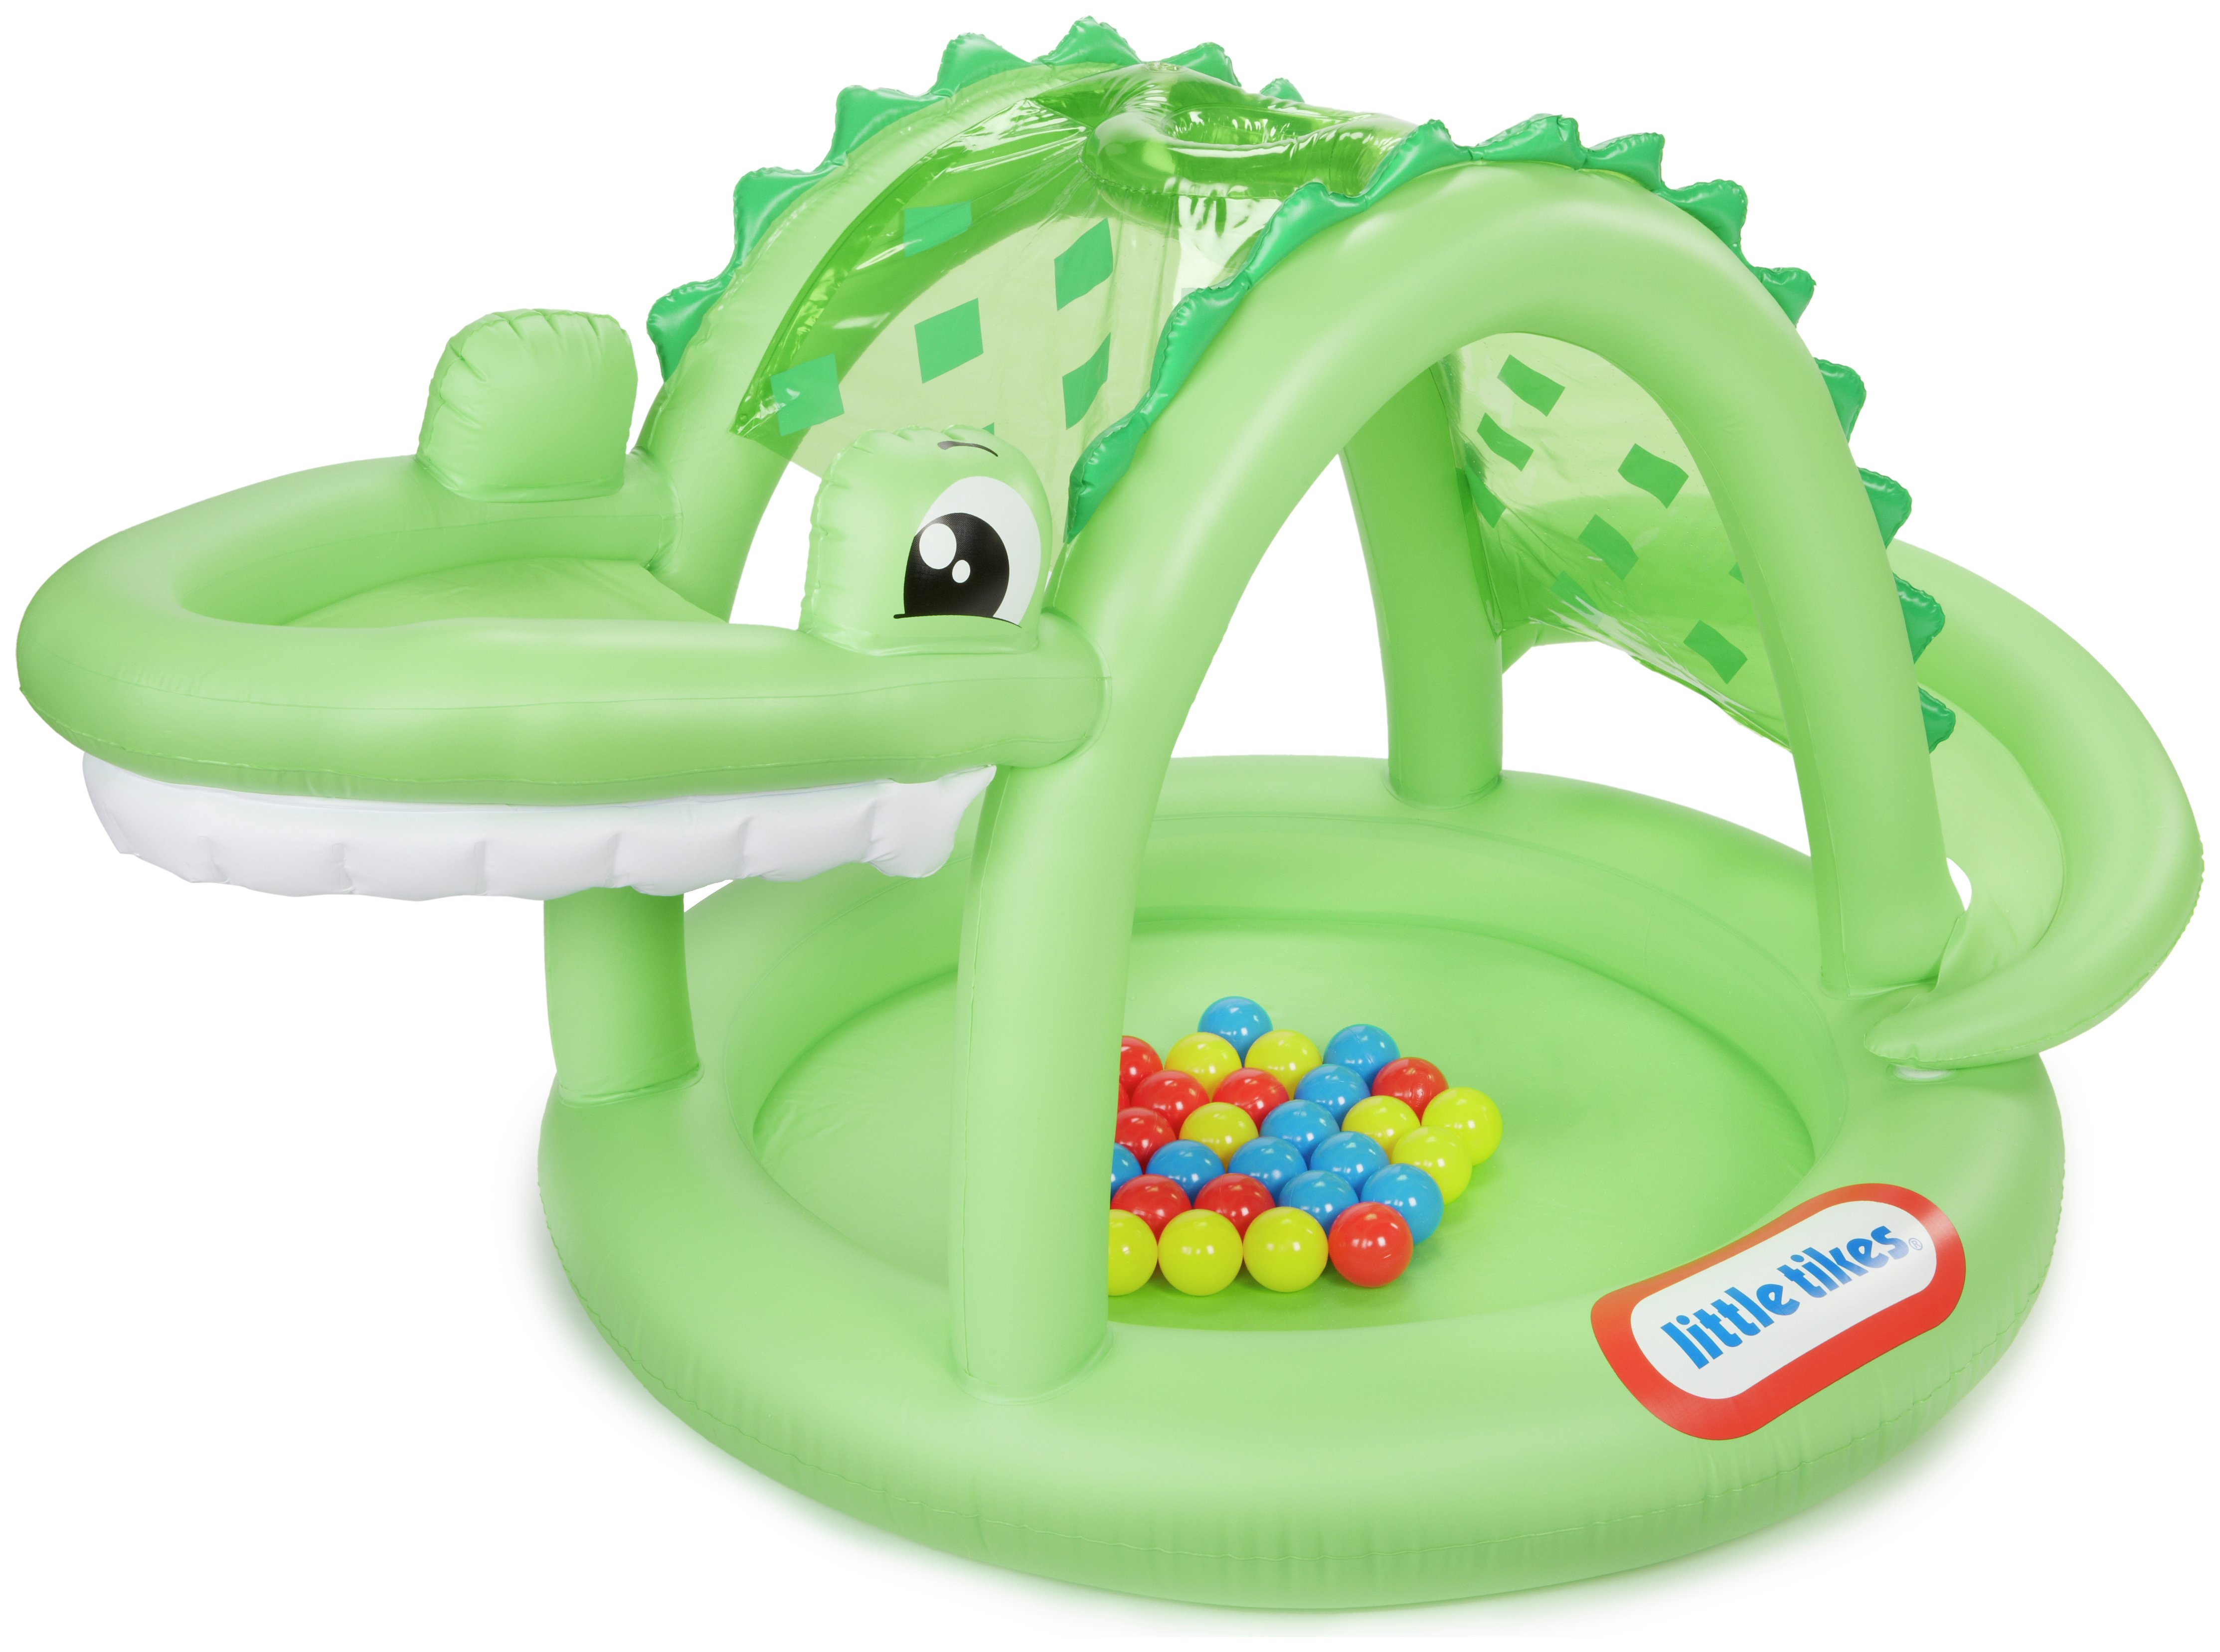 Ball Pit Sale Have Great Fun In Ball Pits Amp Pools For Kids